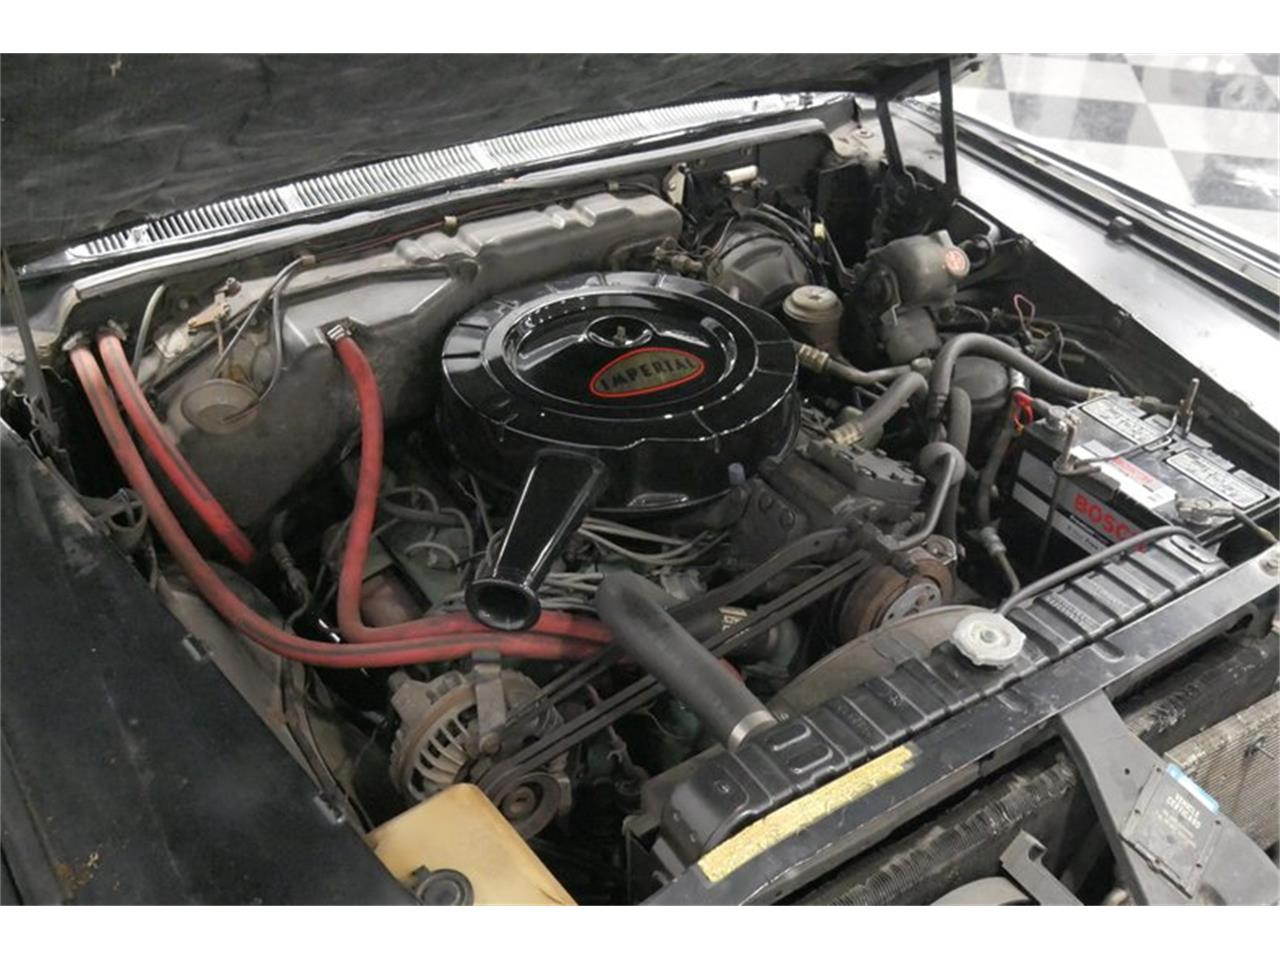 Large Picture of 1966 Chrysler Imperial located in Tennessee Offered by Streetside Classics - Nashville - QAX3